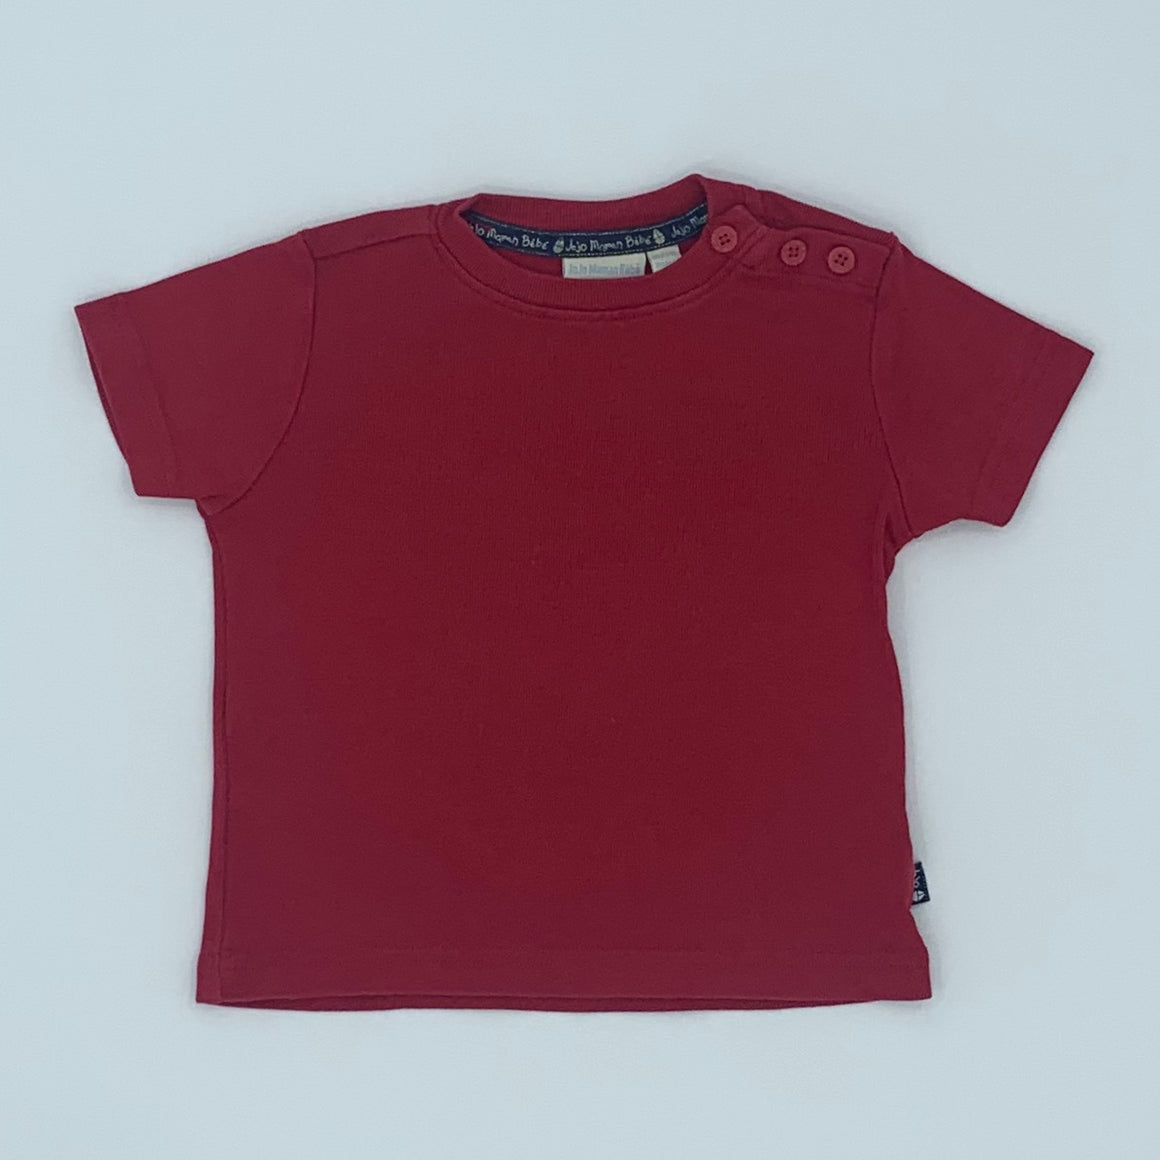 Gently Worn Jojo Maman Bebe red box t-shirt size 18-24 months